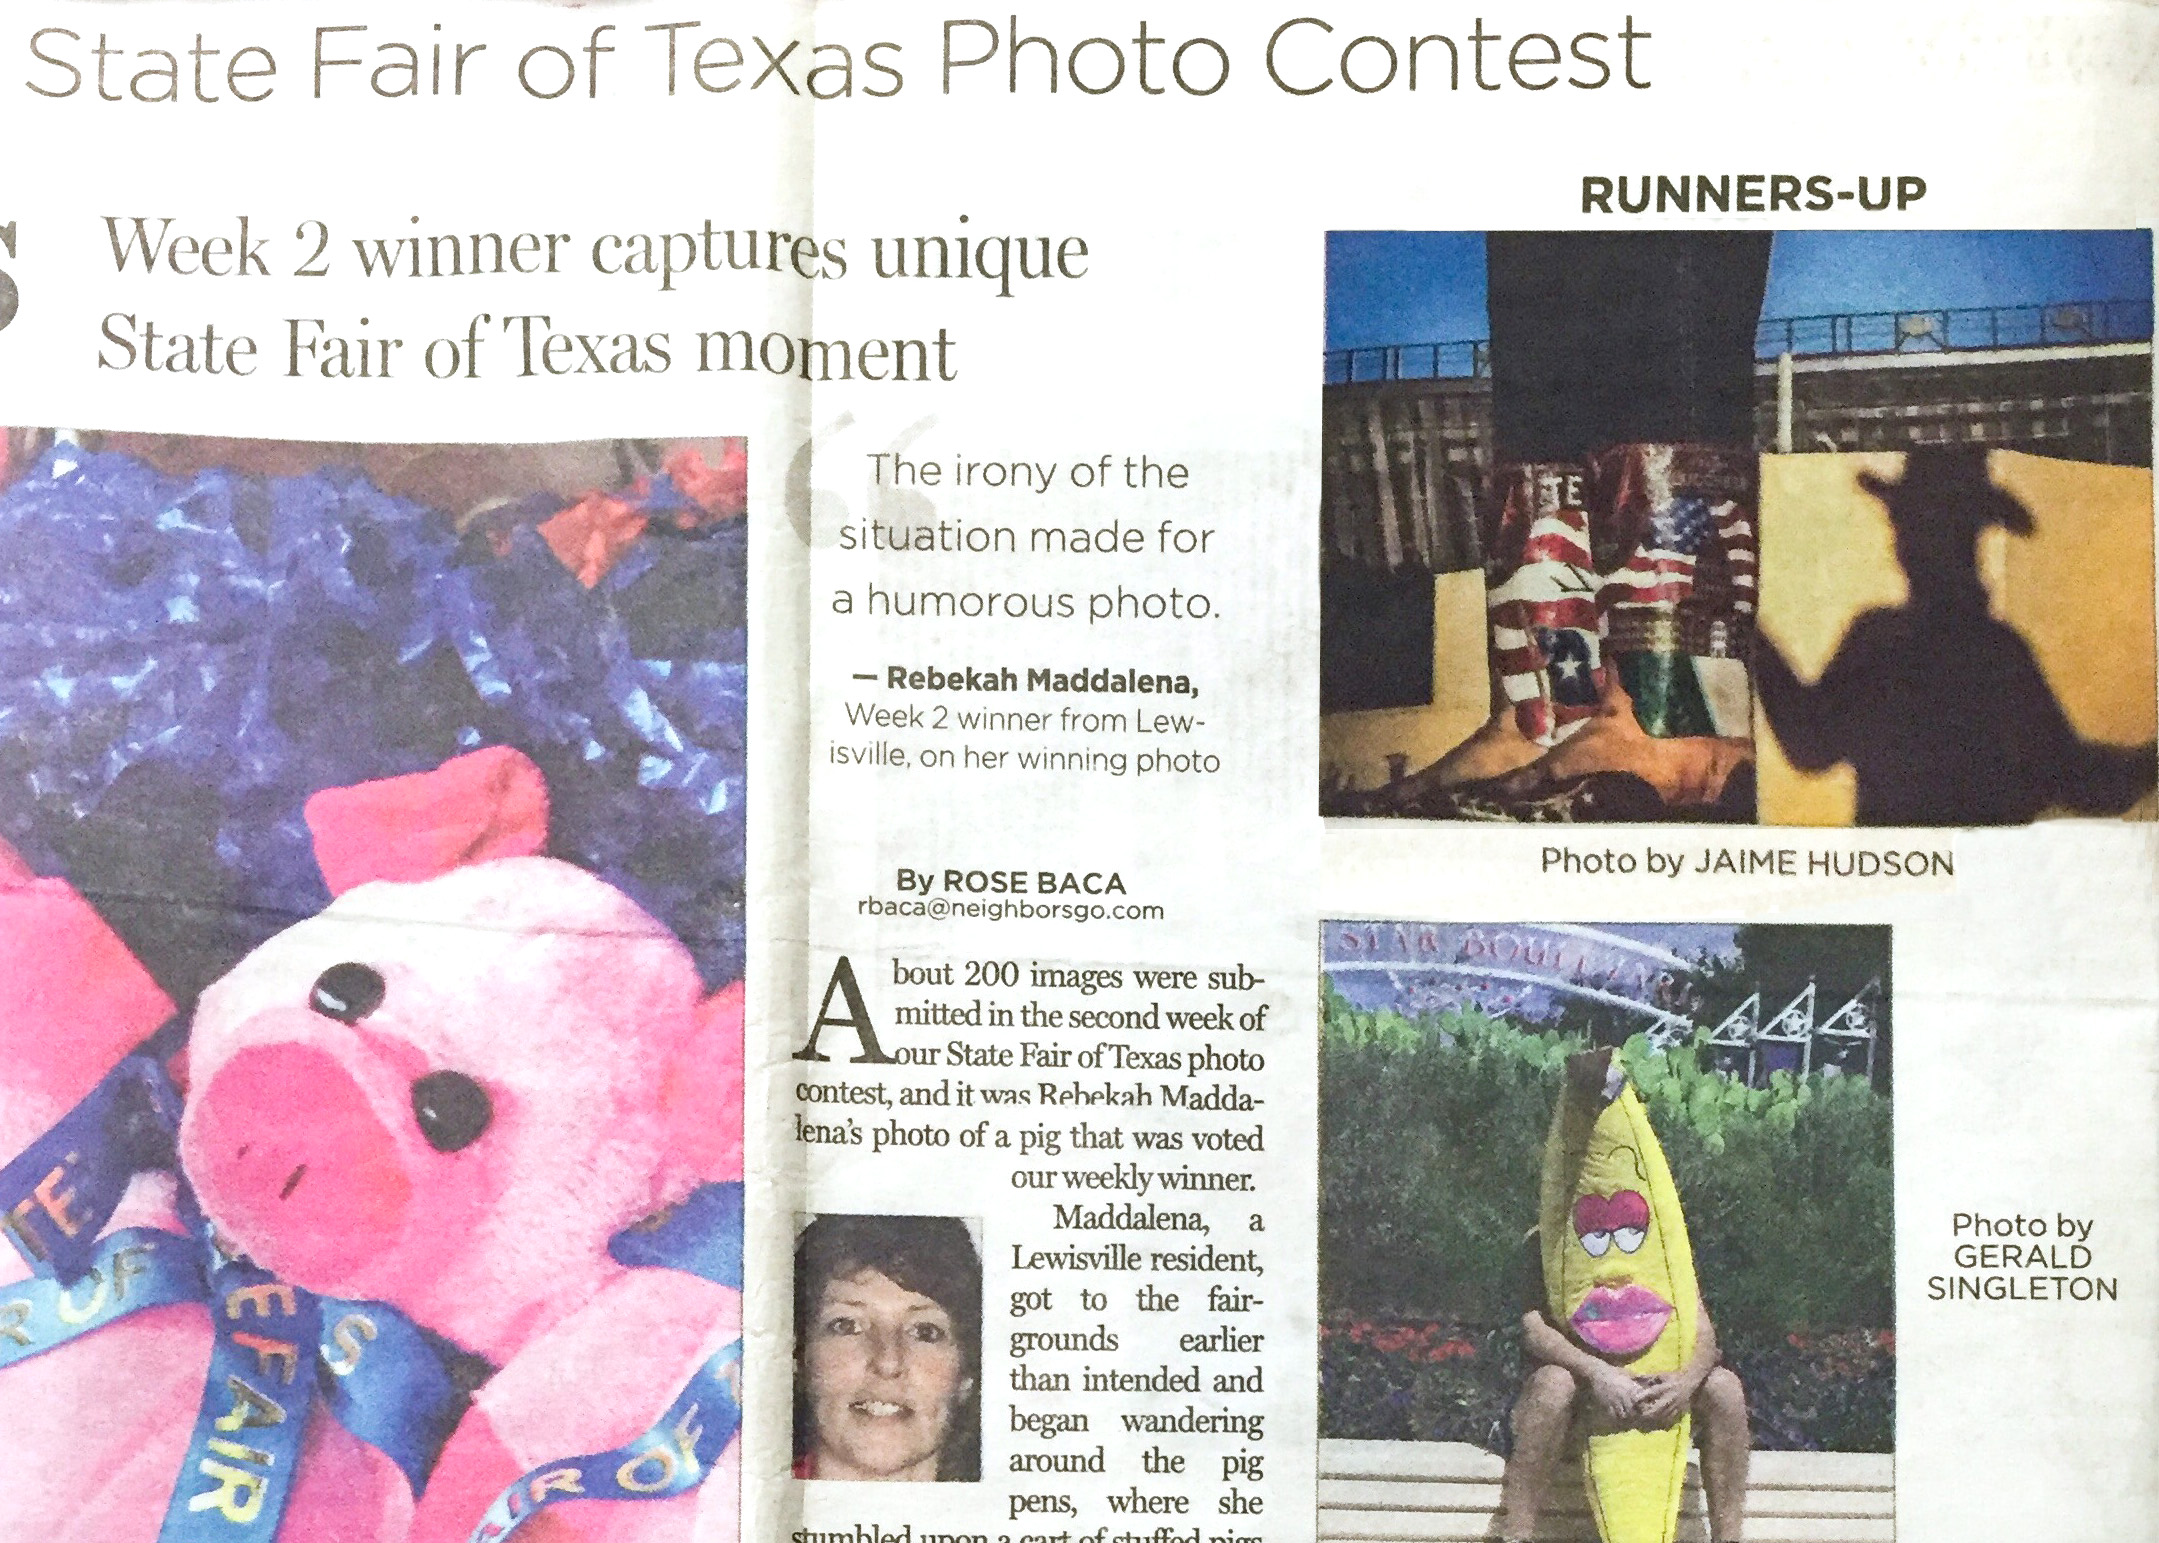 State Fair of Texas Photo Contest 2015